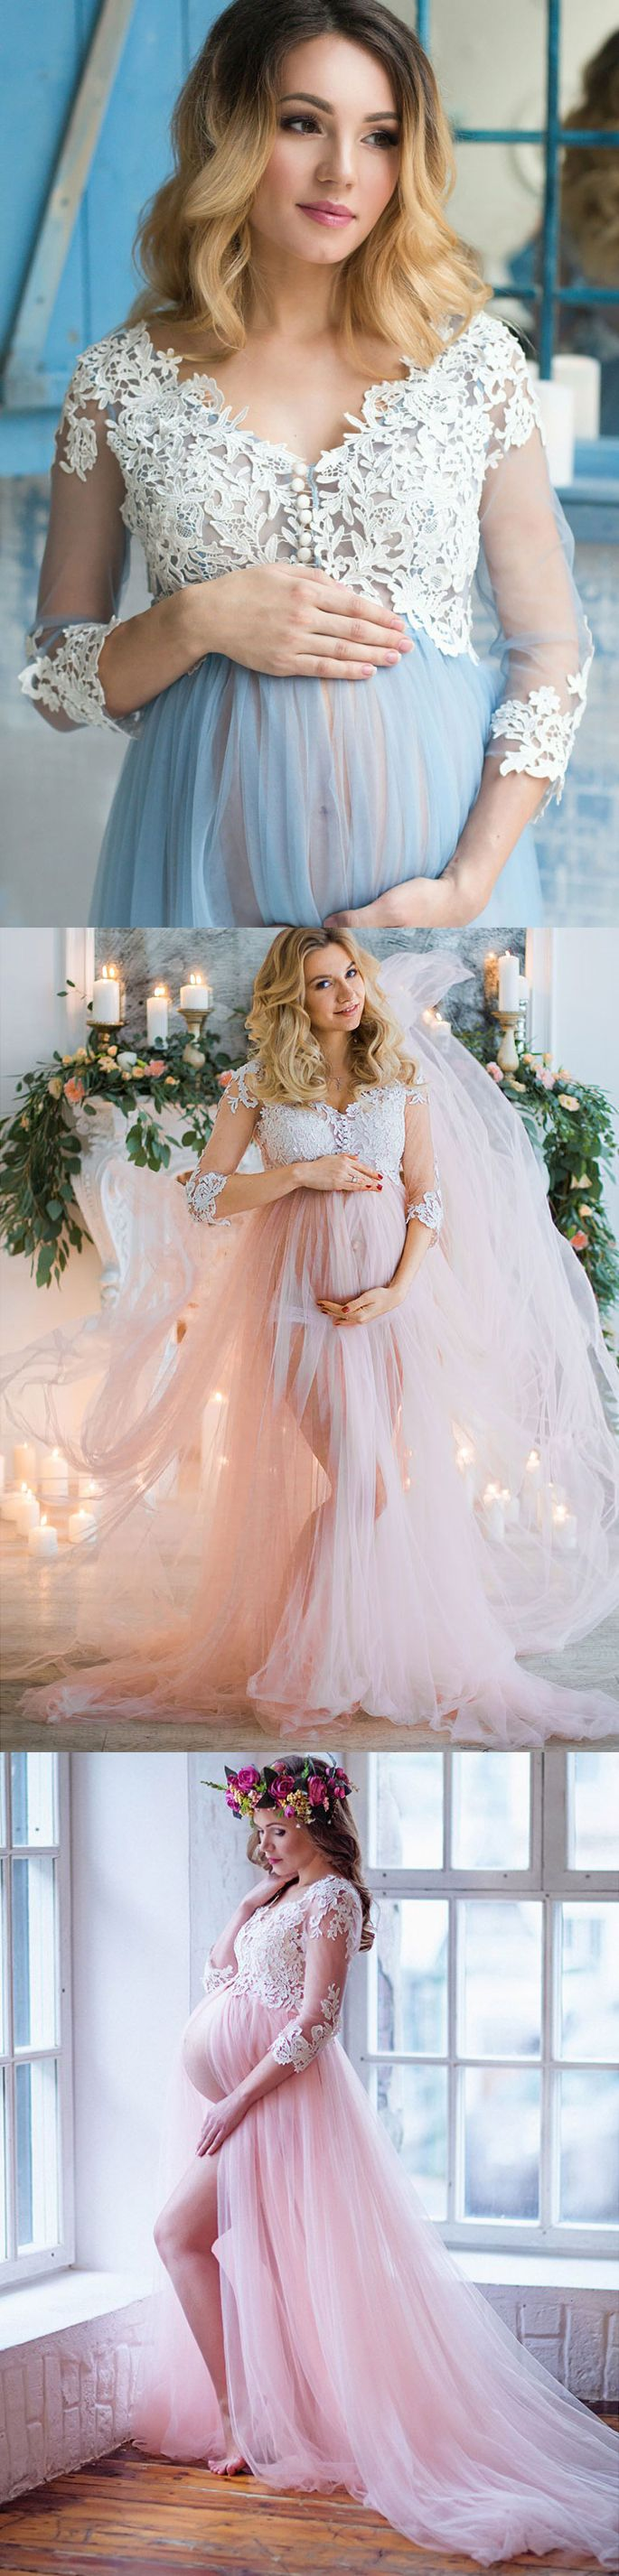 Empire Lace prom dresses,Maternity wedding dresses,#sheergirl #prom #maternity